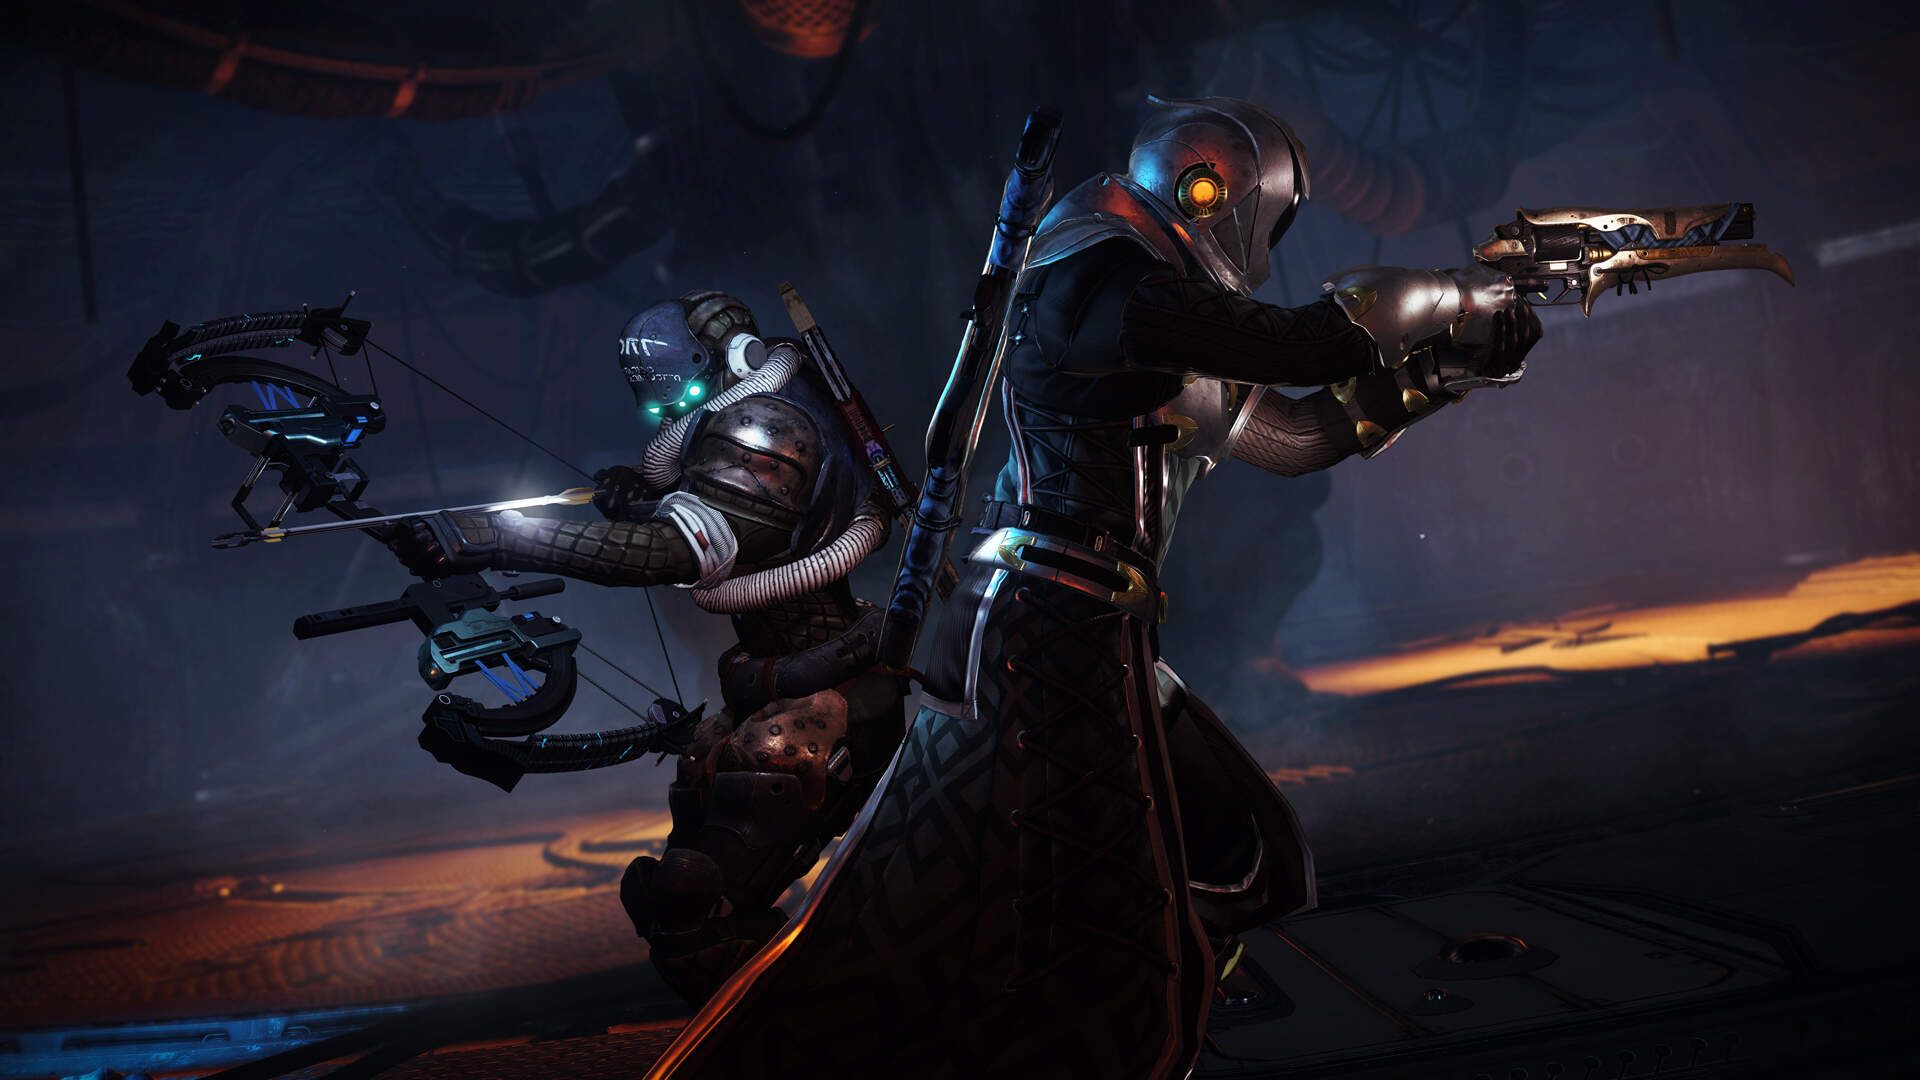 Destiny 2: Season of Opulence Gives Players Greater Control Over the Loot They Actually Want